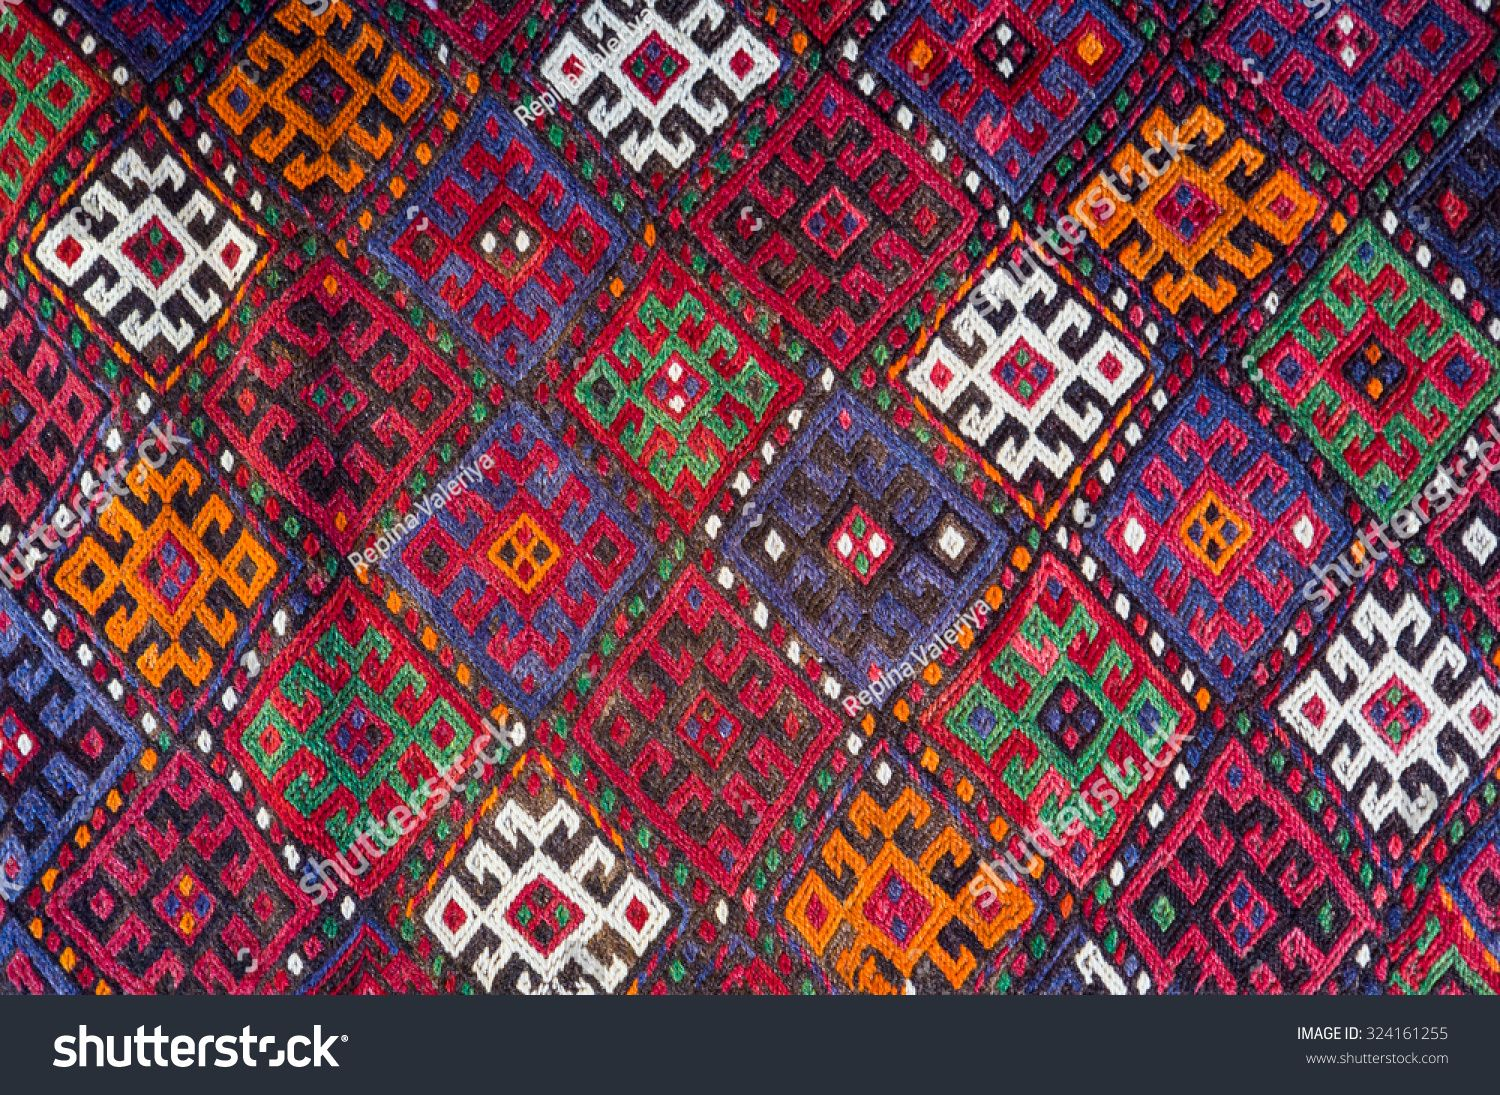 Handmade Woven Rug And Tapestry Vintage Carpets On A